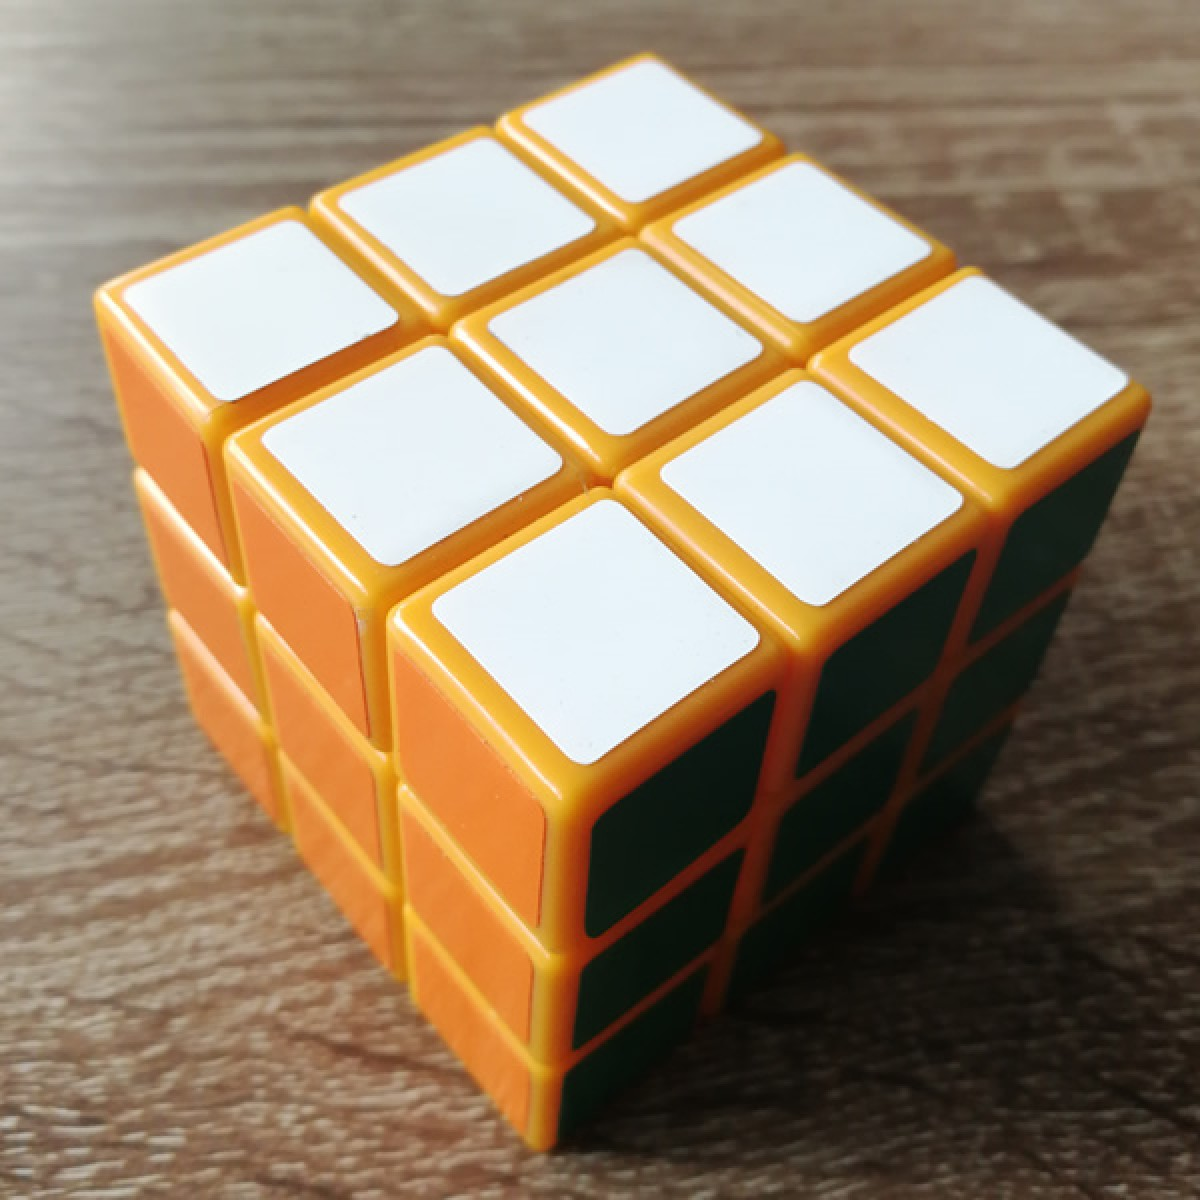 Type C 3x3x3 Magic Cube(V1,Yellow Color)